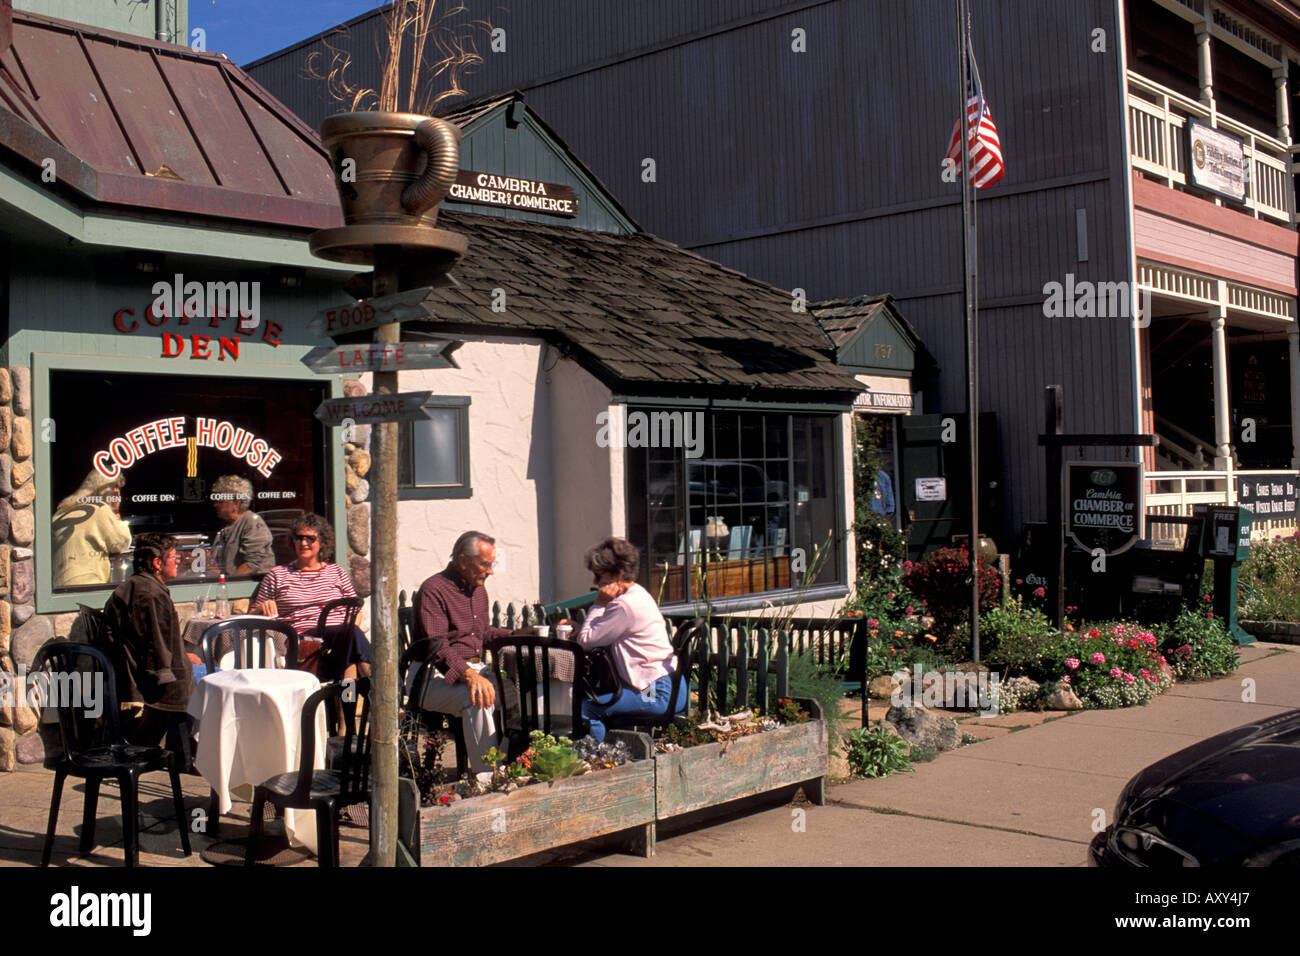 People Drinking Coffee In Outdoor Patio Of A Coffee Shop In The Quaint  Coastal Village Of Cambria California